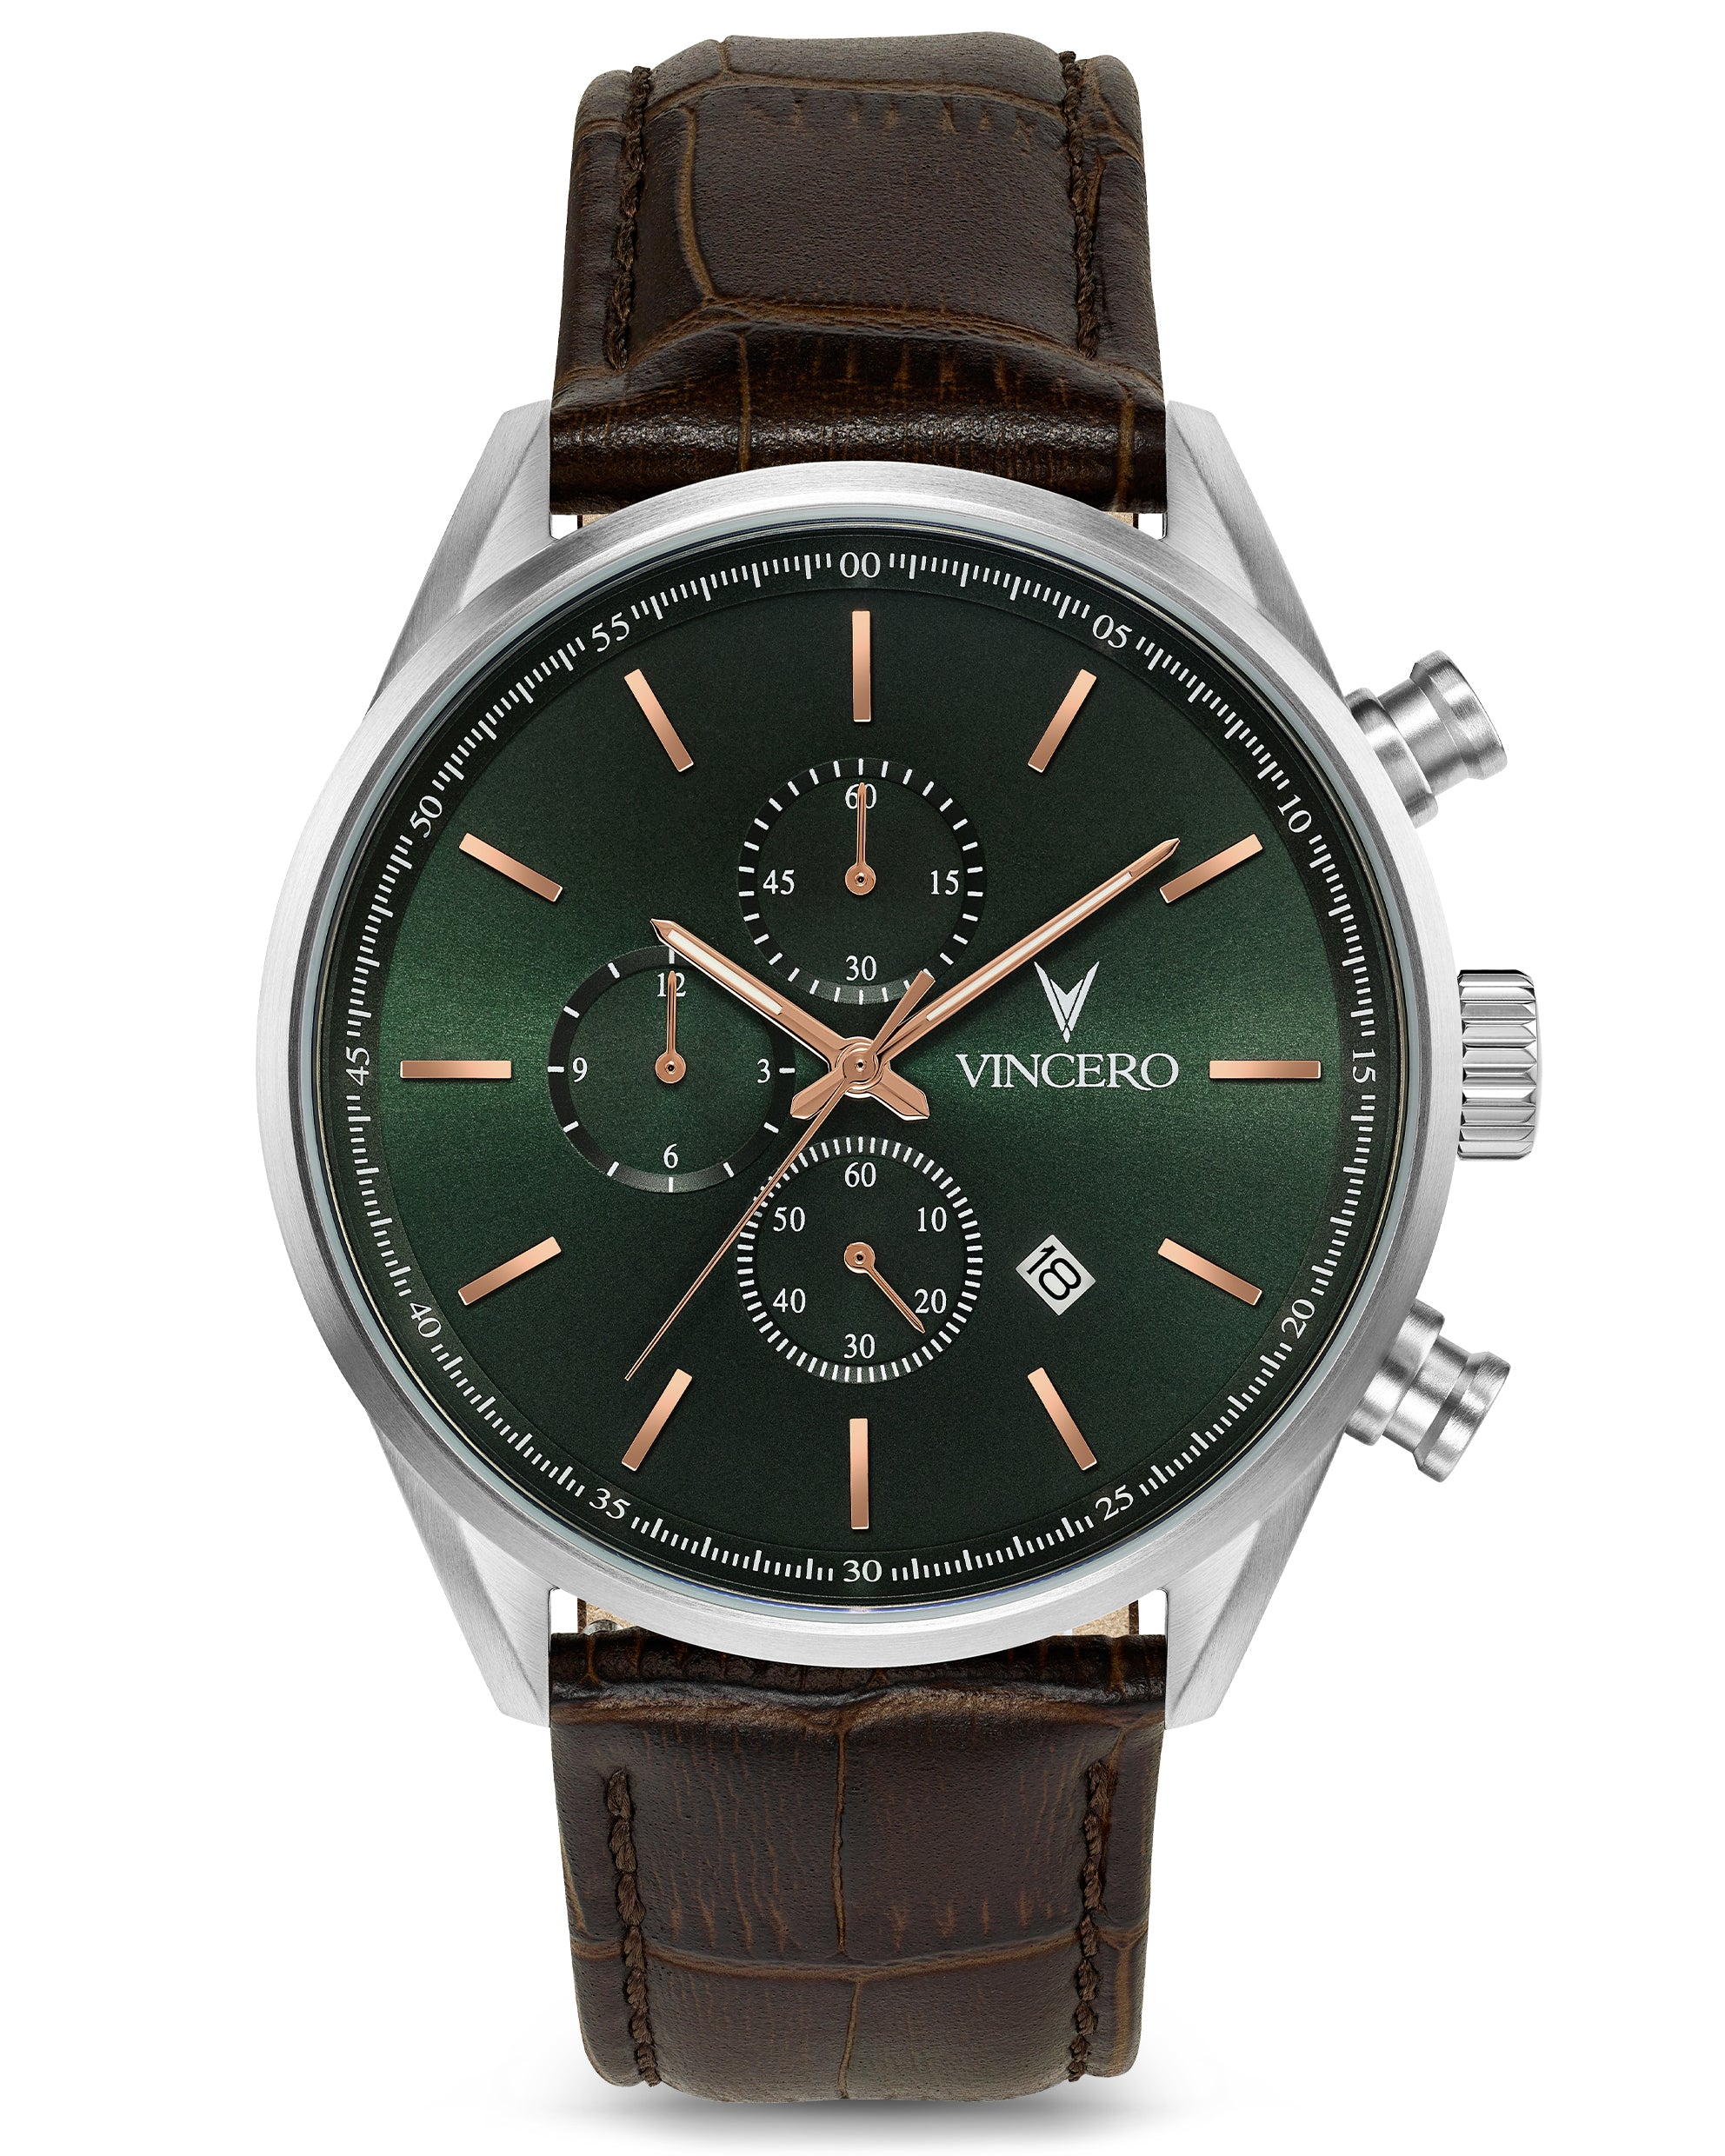 The Chrono S Limited Release - Dark Olive/Silver